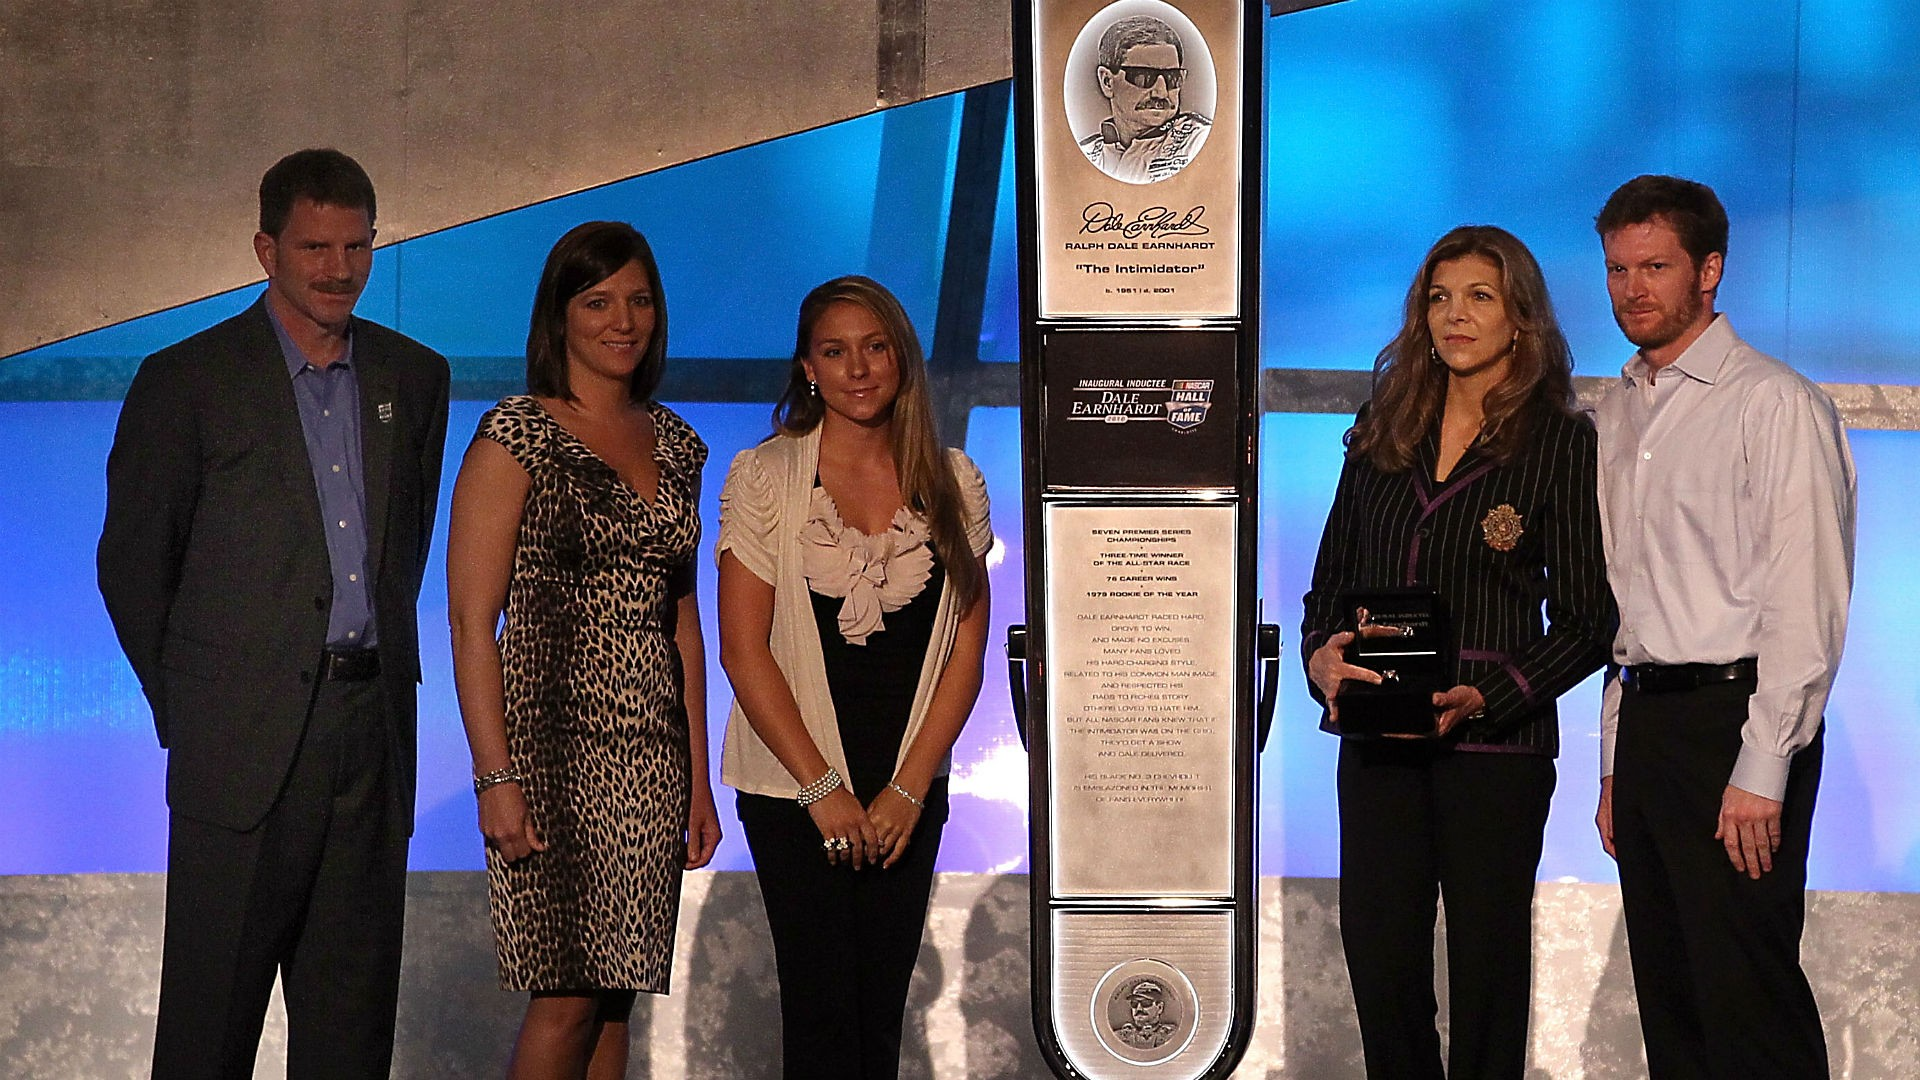 How Teresa Earnhardt Is Tarnishing Dale Earnhardt S Name And Legacy Teresa earnhardt has battled for four years to try to get her stepson kerry earnhardt to change the name for a collection of homes kerry and his wife design and promote through the earnhardt. how teresa earnhardt is tarnishing dale earnhardt s name and legacy